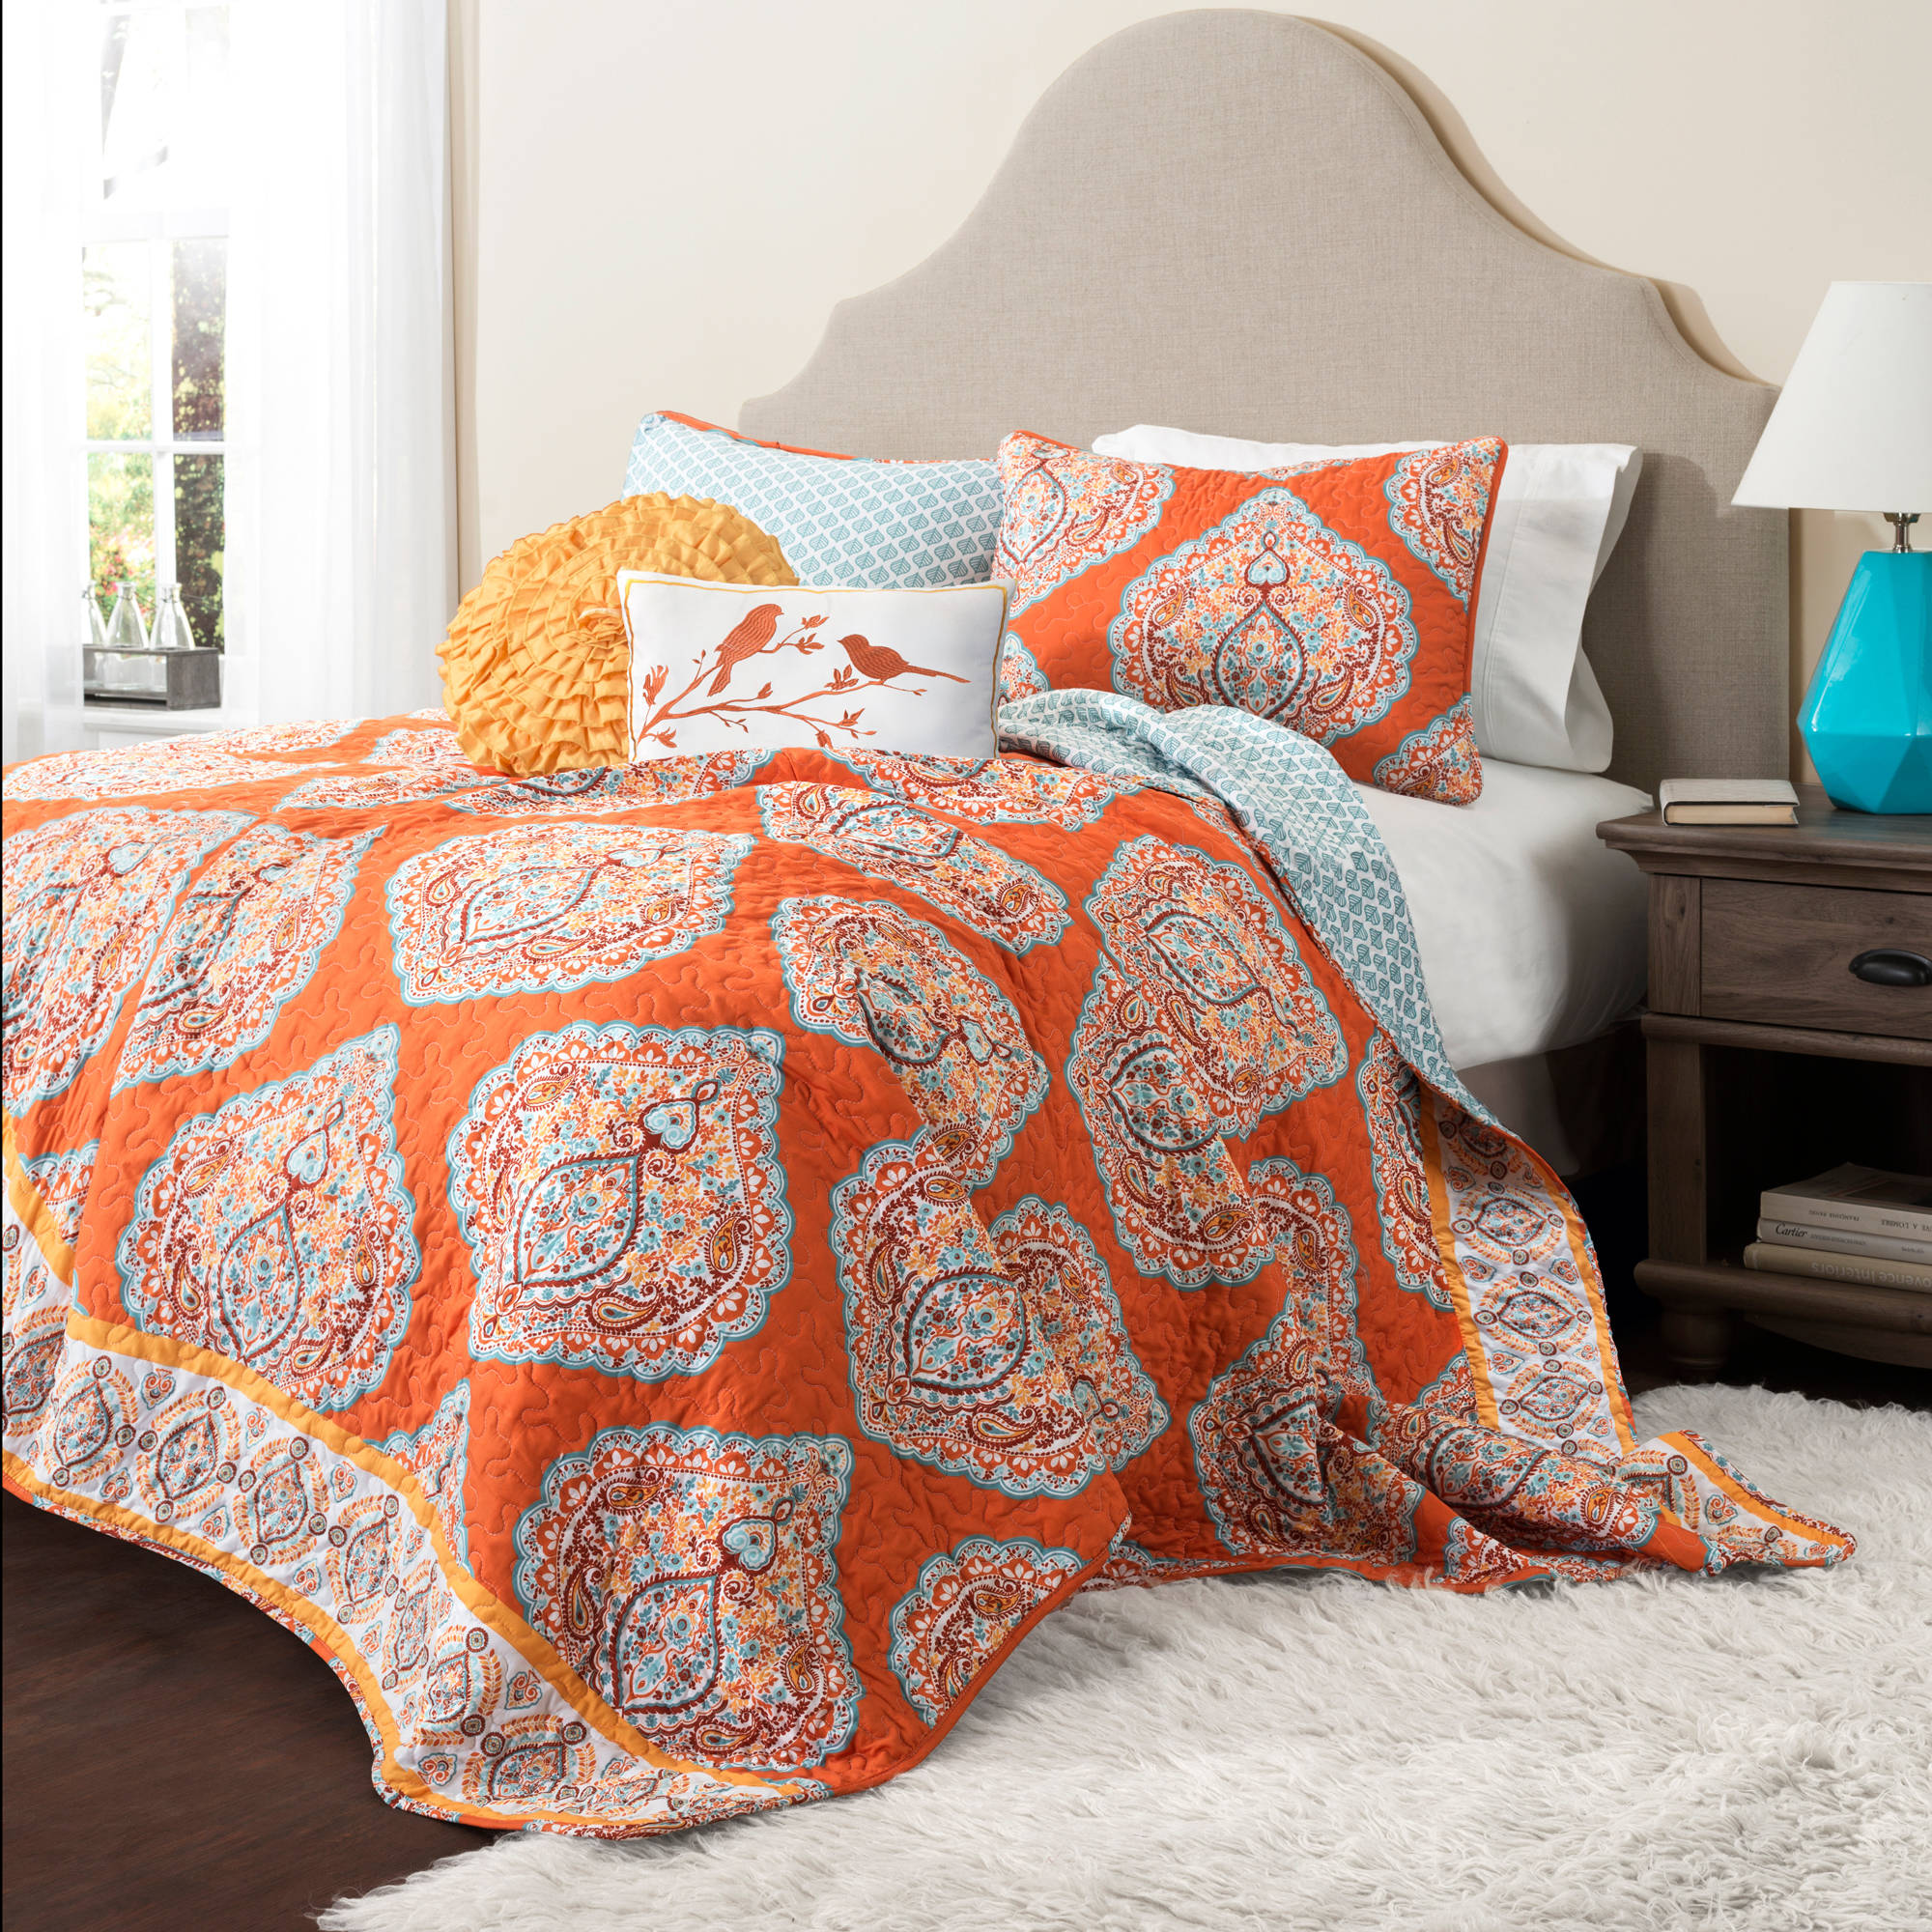 Harley Quilt Tangerine 5-Piece Set by Generic